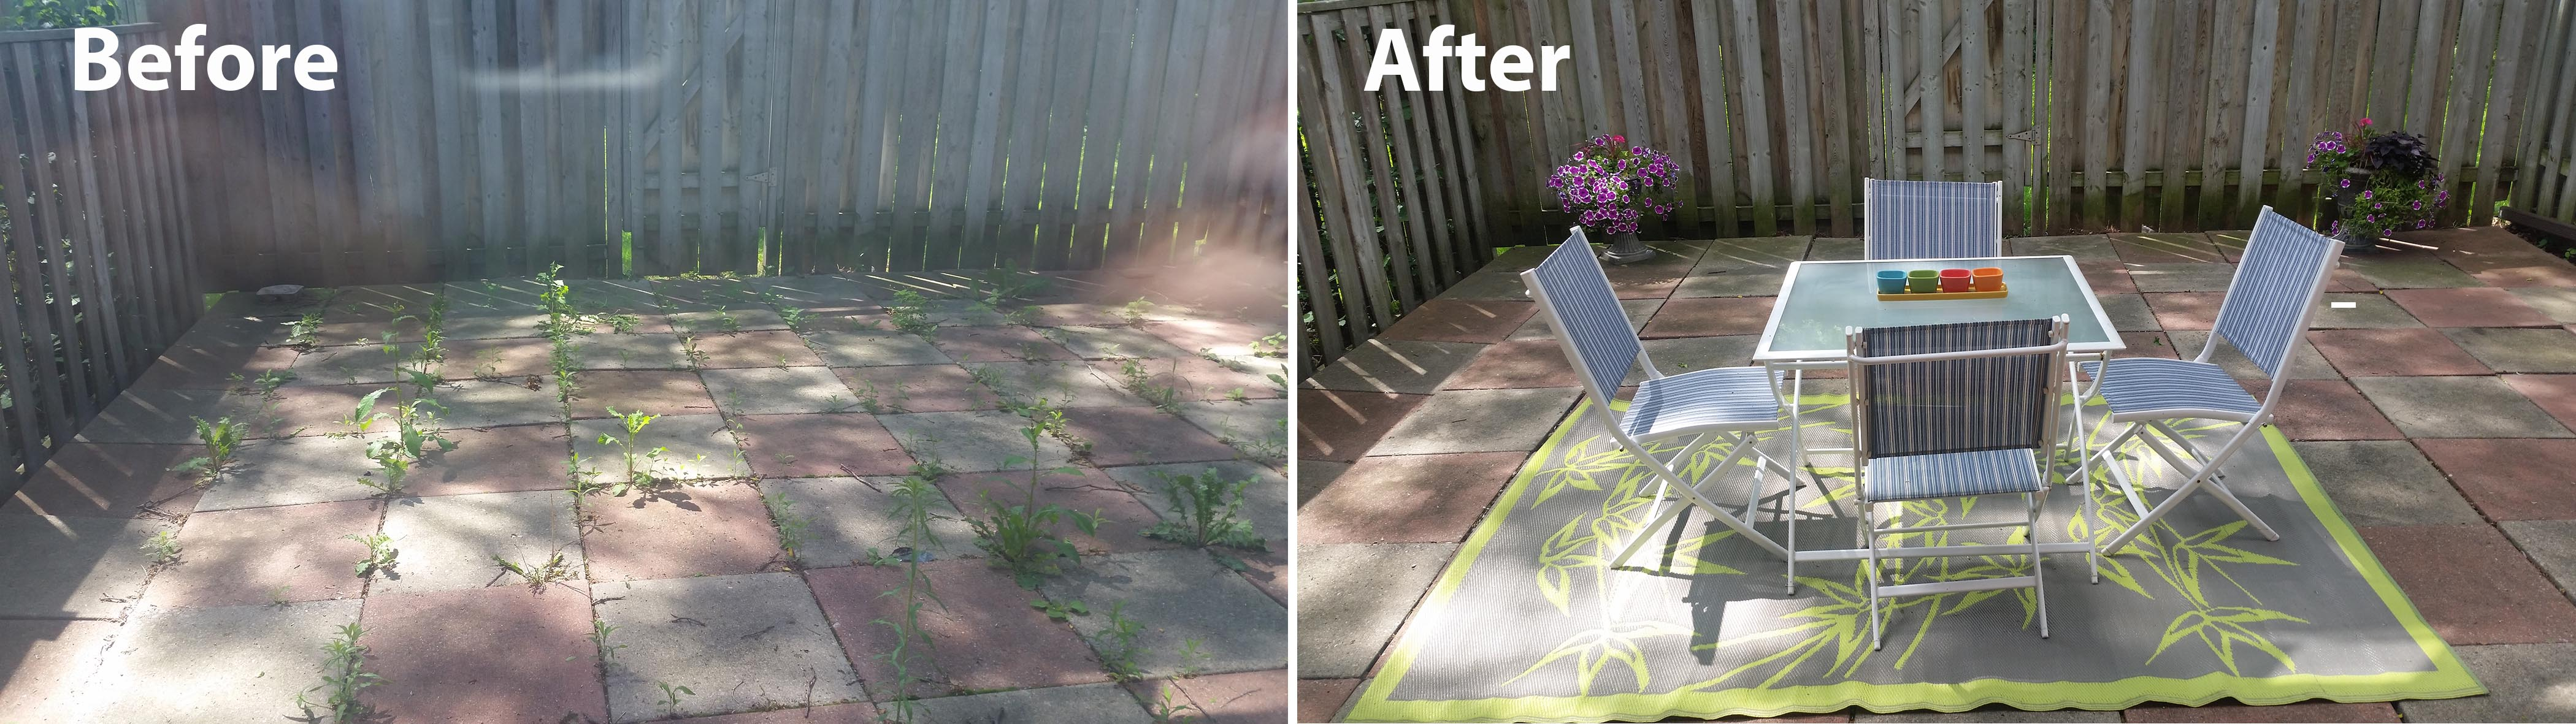 Back patio was cleaned up, weeds removed and furniture added for staging